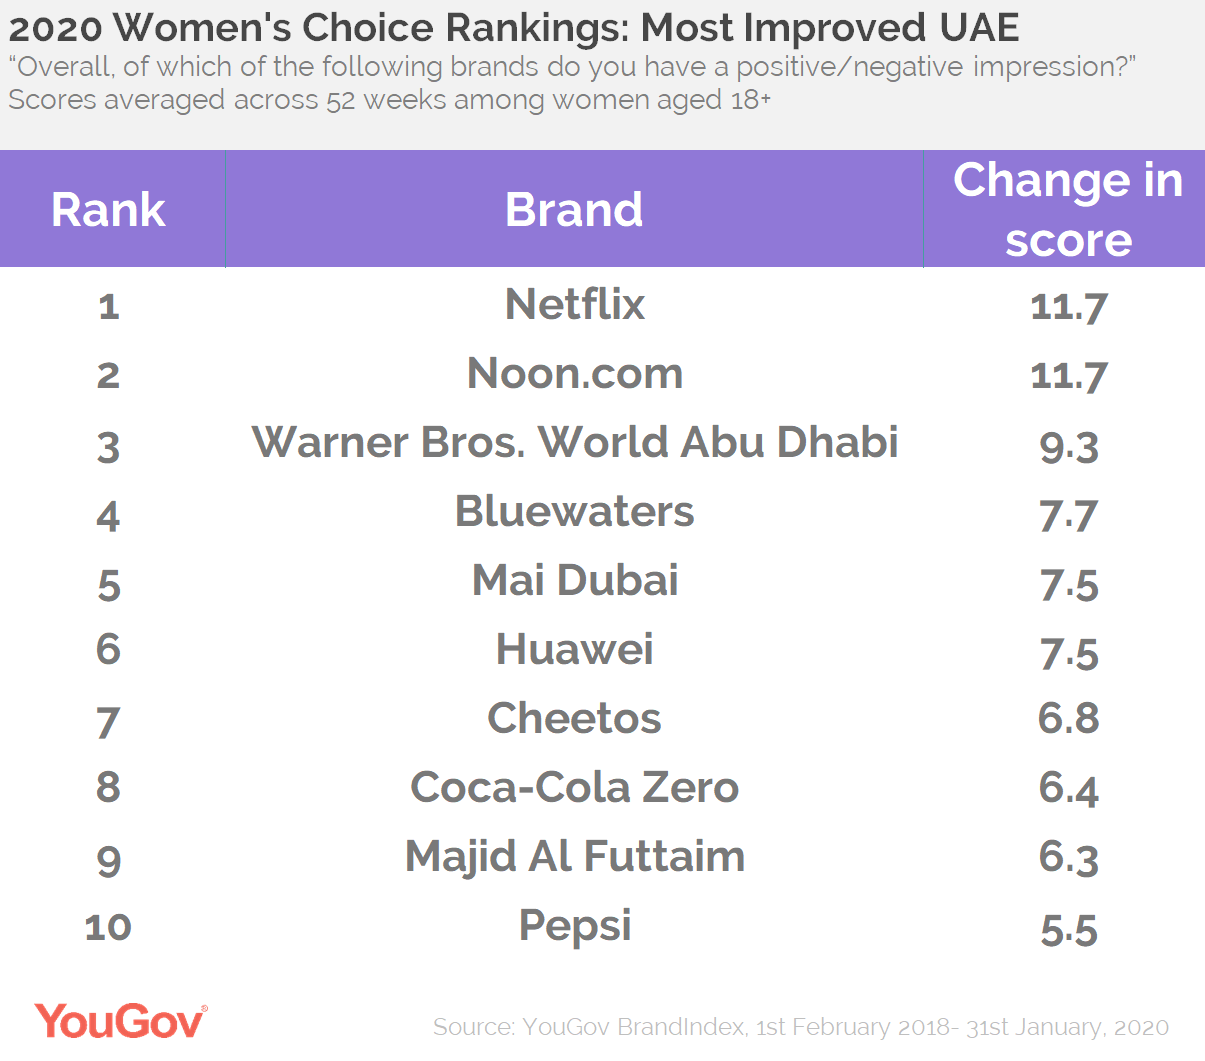 tOP IMPROVERS UAE